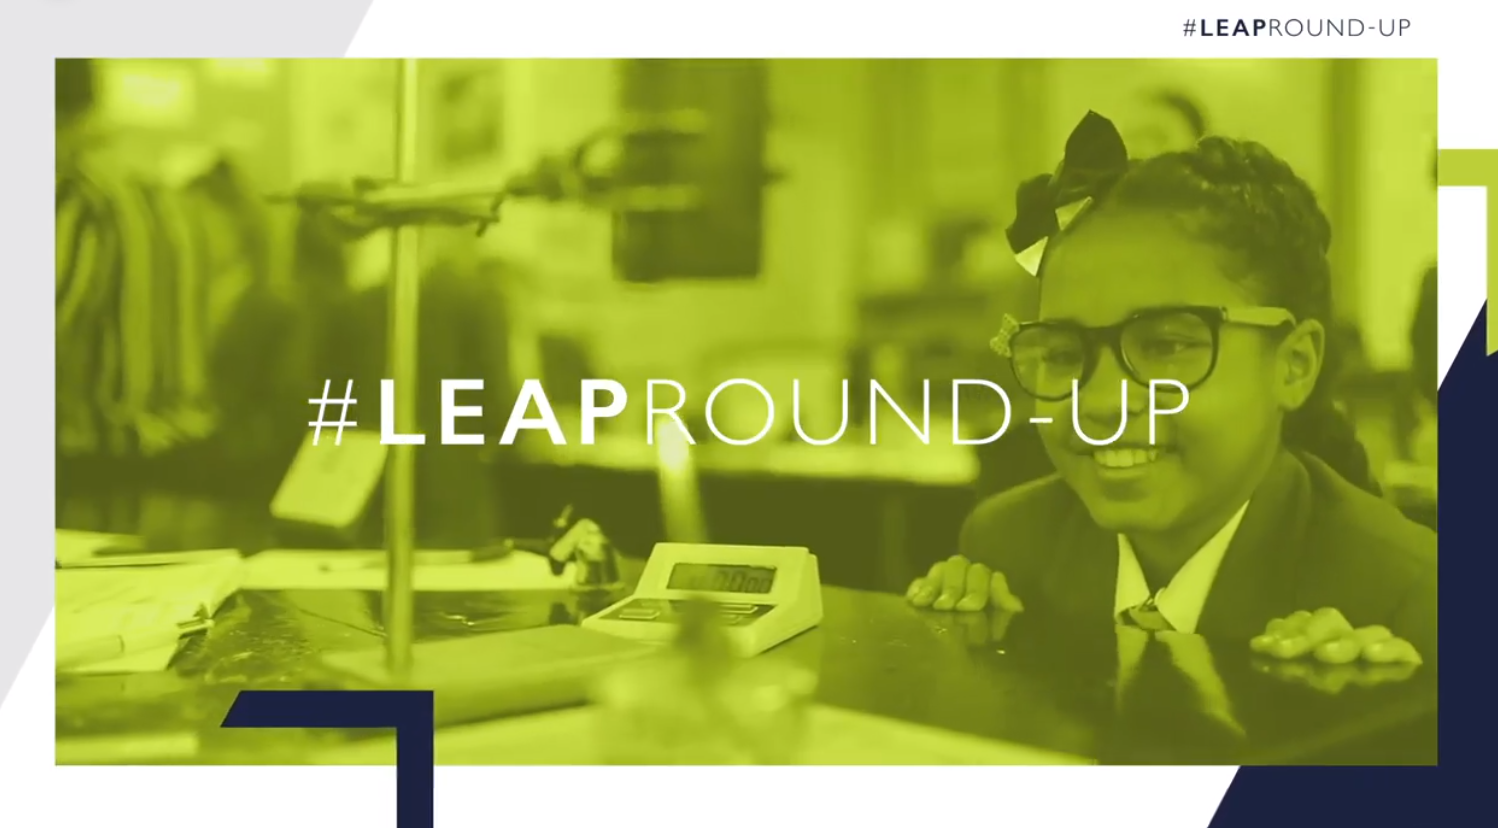 Trust Newsletter October 2020 #LEAPROUNDUP